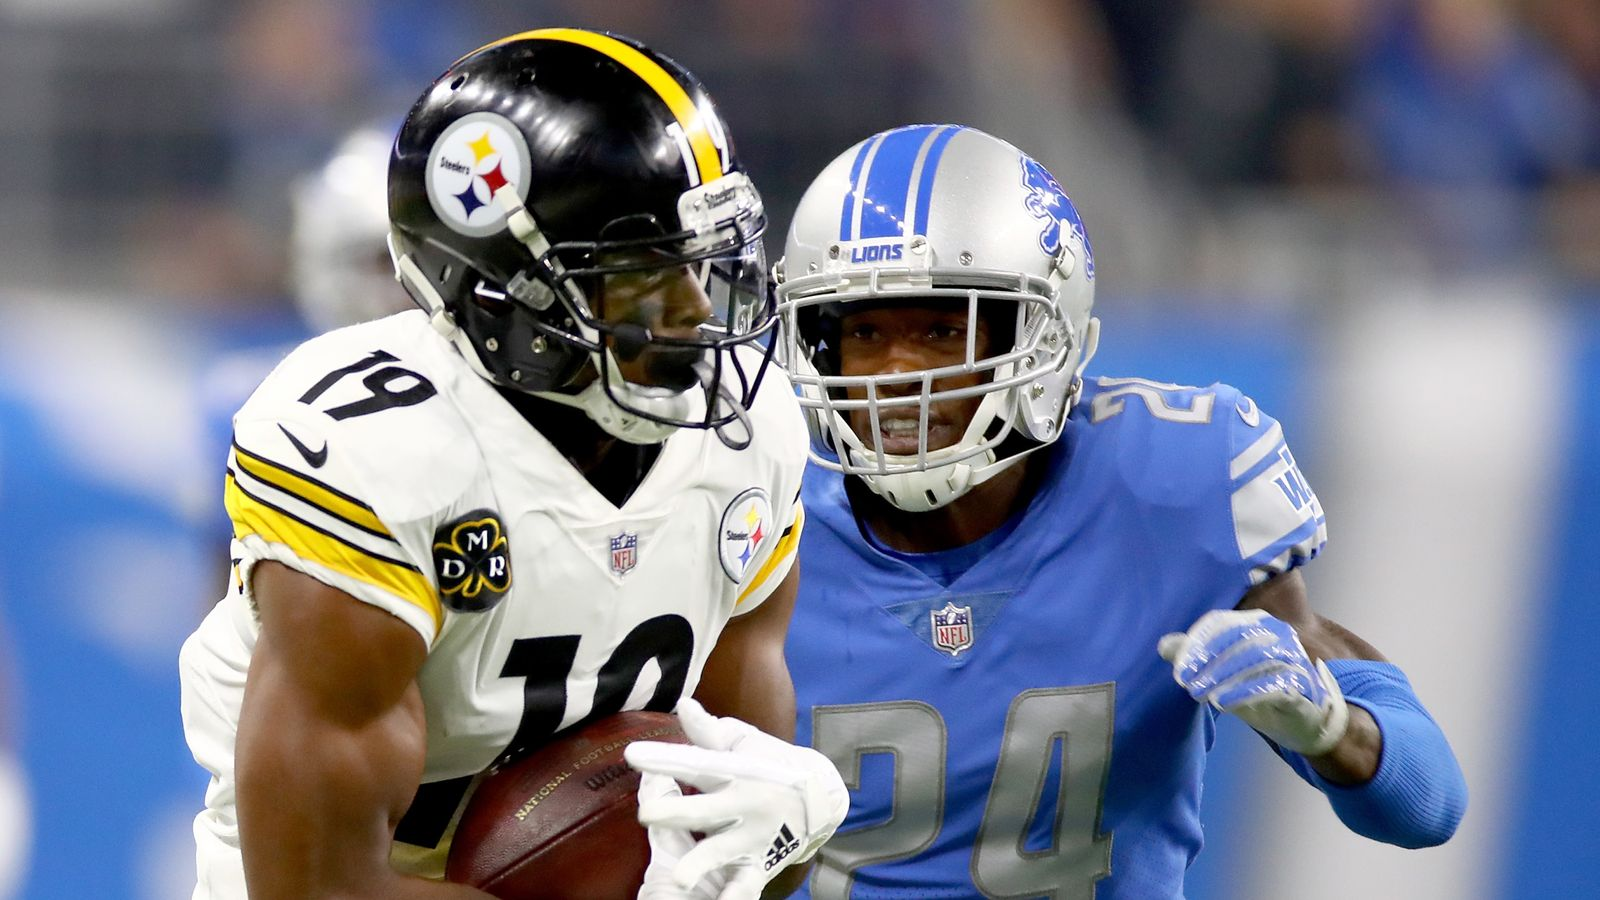 bfb46b71e48 Pittsburgh Steelers 20-15 Detroit Lions: JuJu Smith-Schuster scores 97-yard  TD in road win | NFL News | Sky Sports